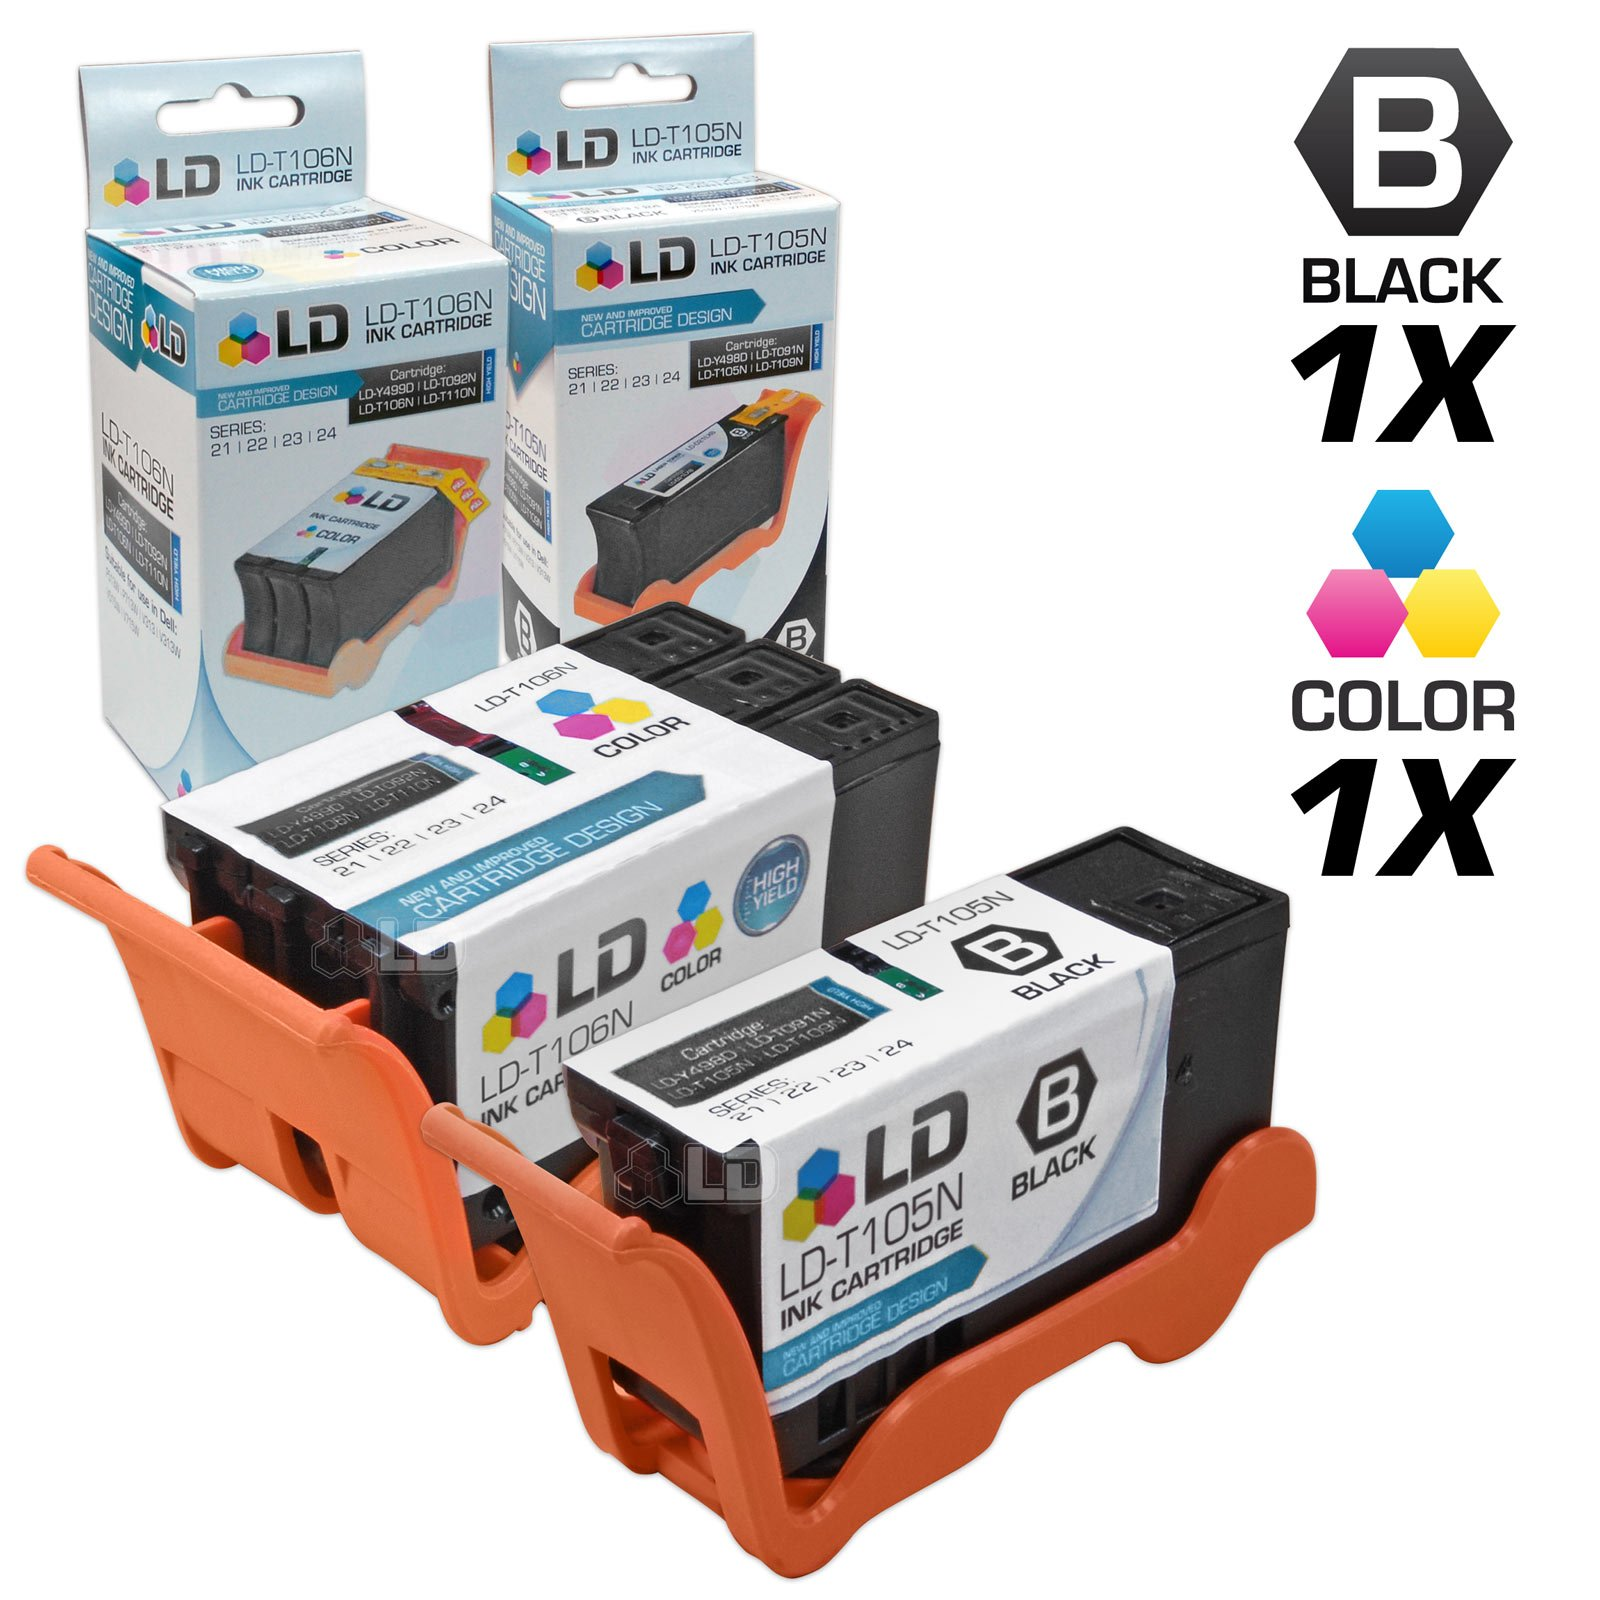 LD Compatible Set of 2 (Series 23) High Yield Black & Color Ink Cartridges for the Dell V515w Printer: 1 Black T105N, 1 Color T106N